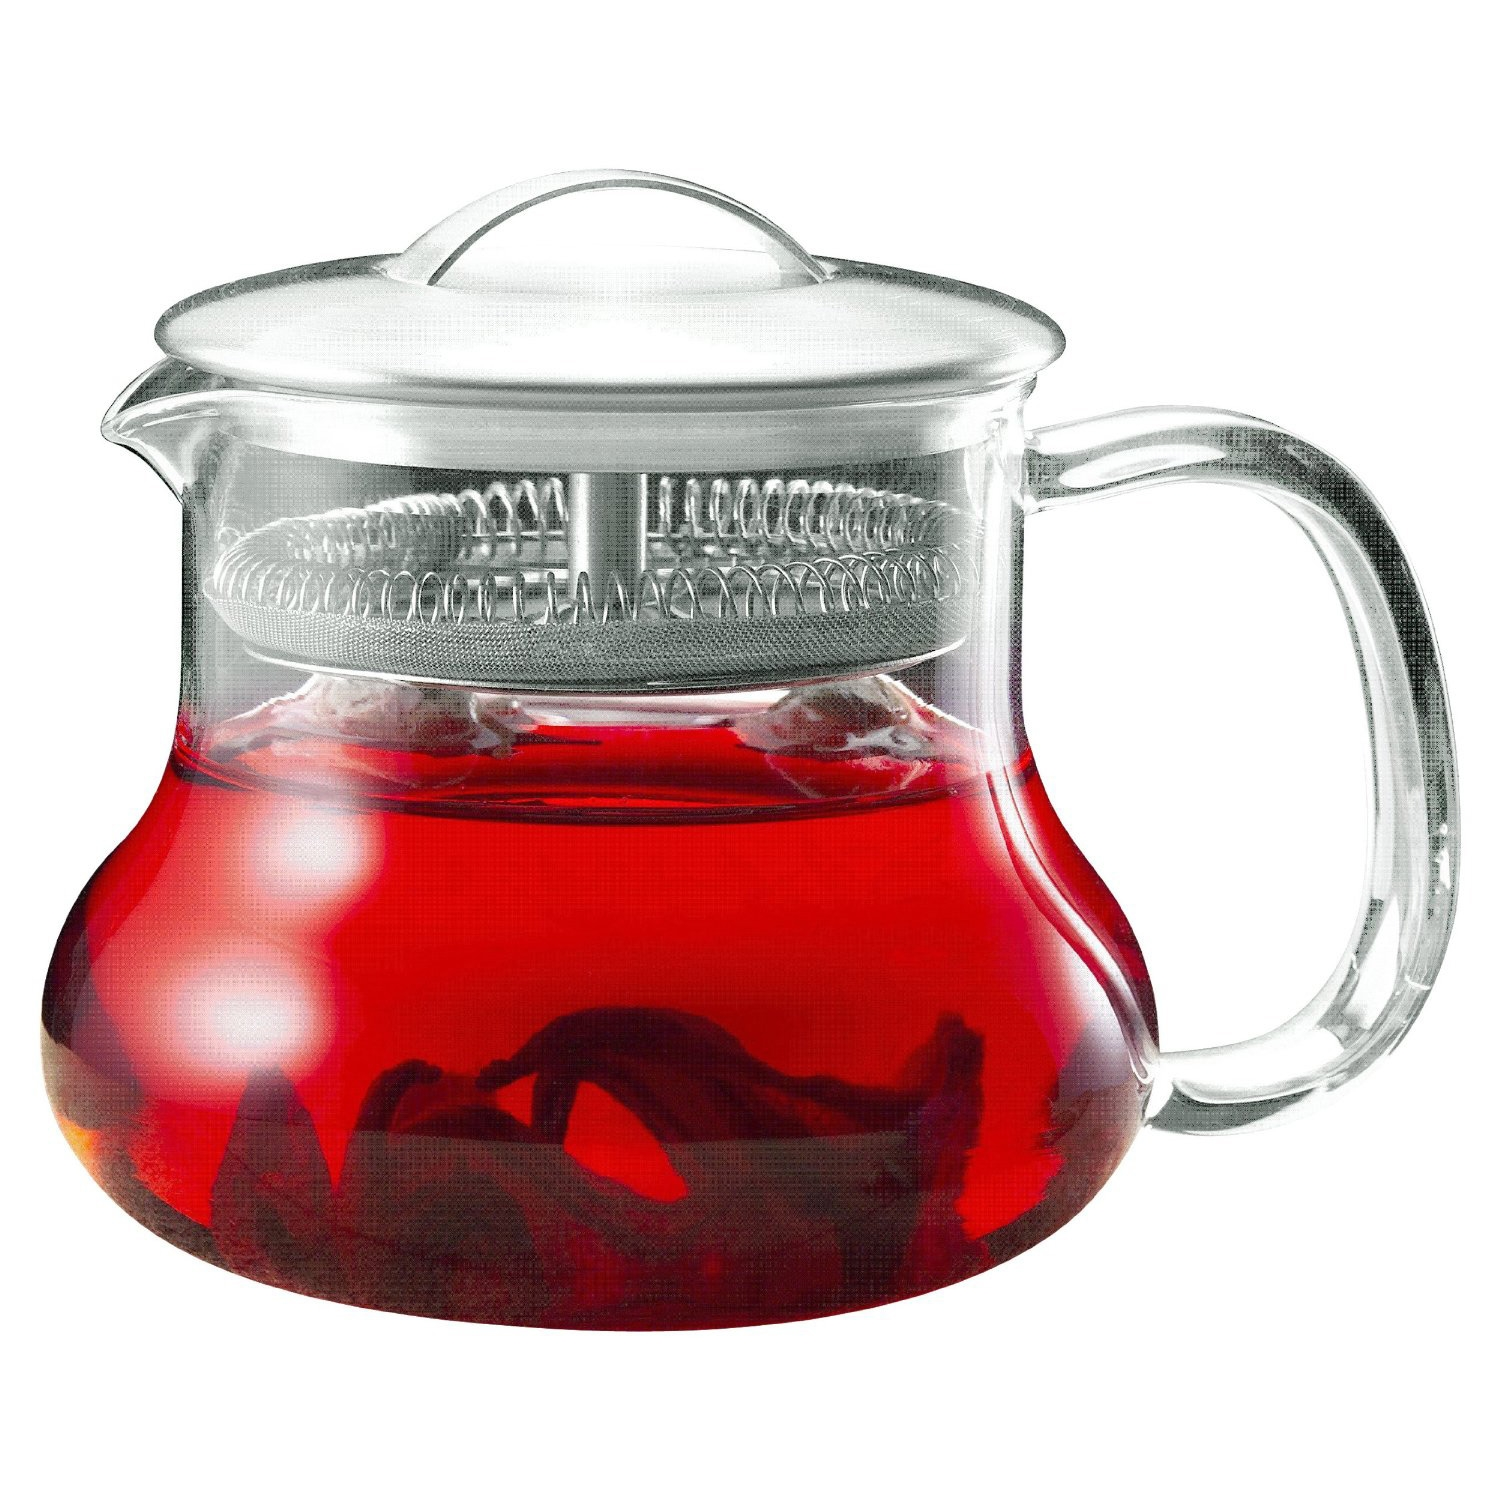 This 22-ounce Glass Kettle Tea Pot Strainer with Stainless Steel Lid is great for any teahouse, restaurant, home, office, and a great gift idea! It features a stainless steel lid that has a built in permanent micromesh filter that brews the perfect cup of loose or flowering tea. The Sitka has a convenient easy pour handle and a non-drip spout.